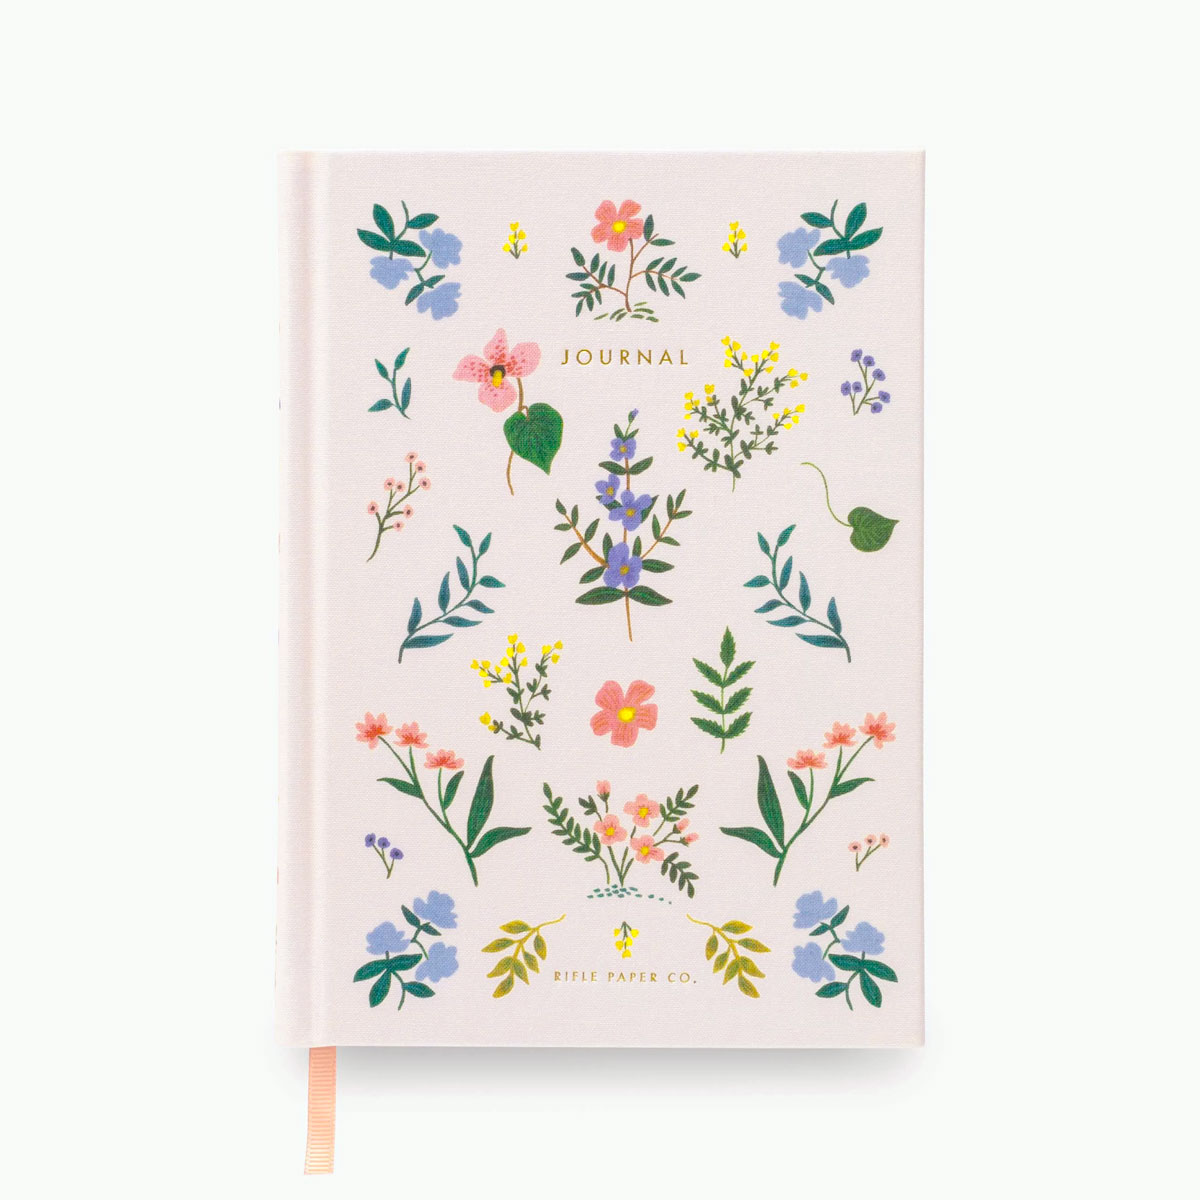 Rifle Paper Co. Cuaderno / Journal Wildwood | Hojas Rayadas |Likely.es